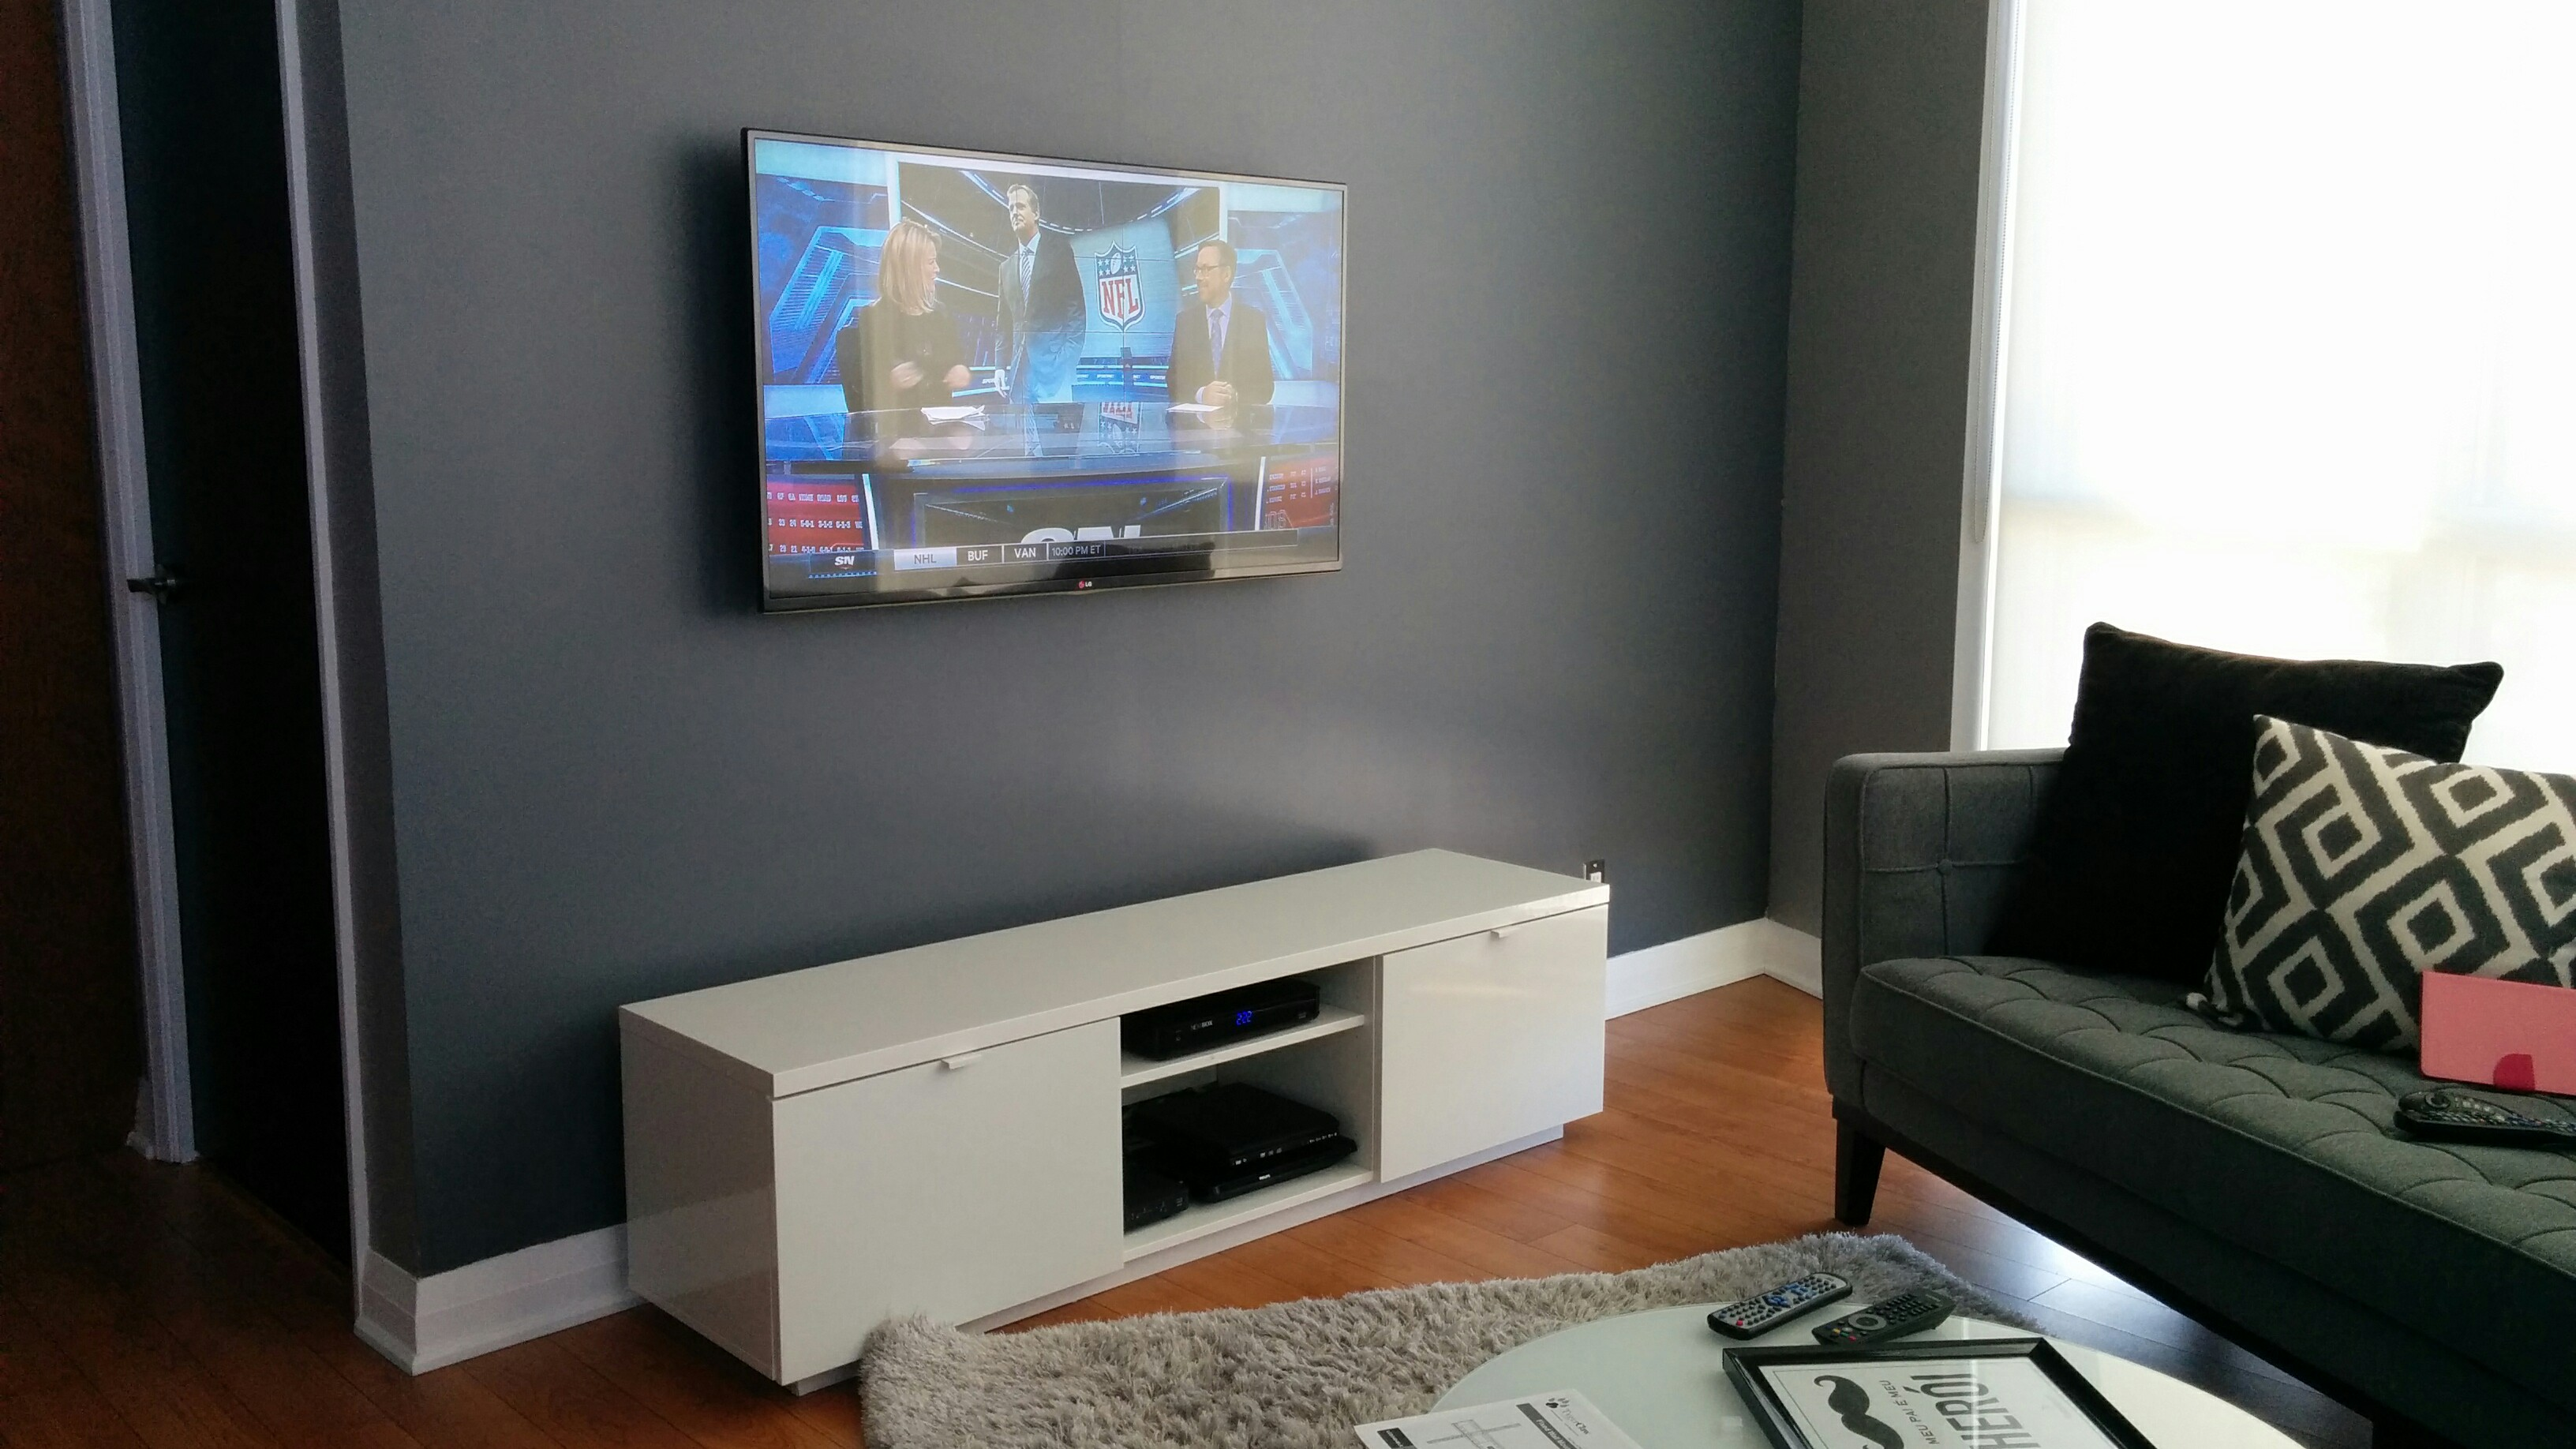 we will be offering a solution to source, assemble and perform the  installation of your wall mounted tv and media shelve under the tv to make  your loving